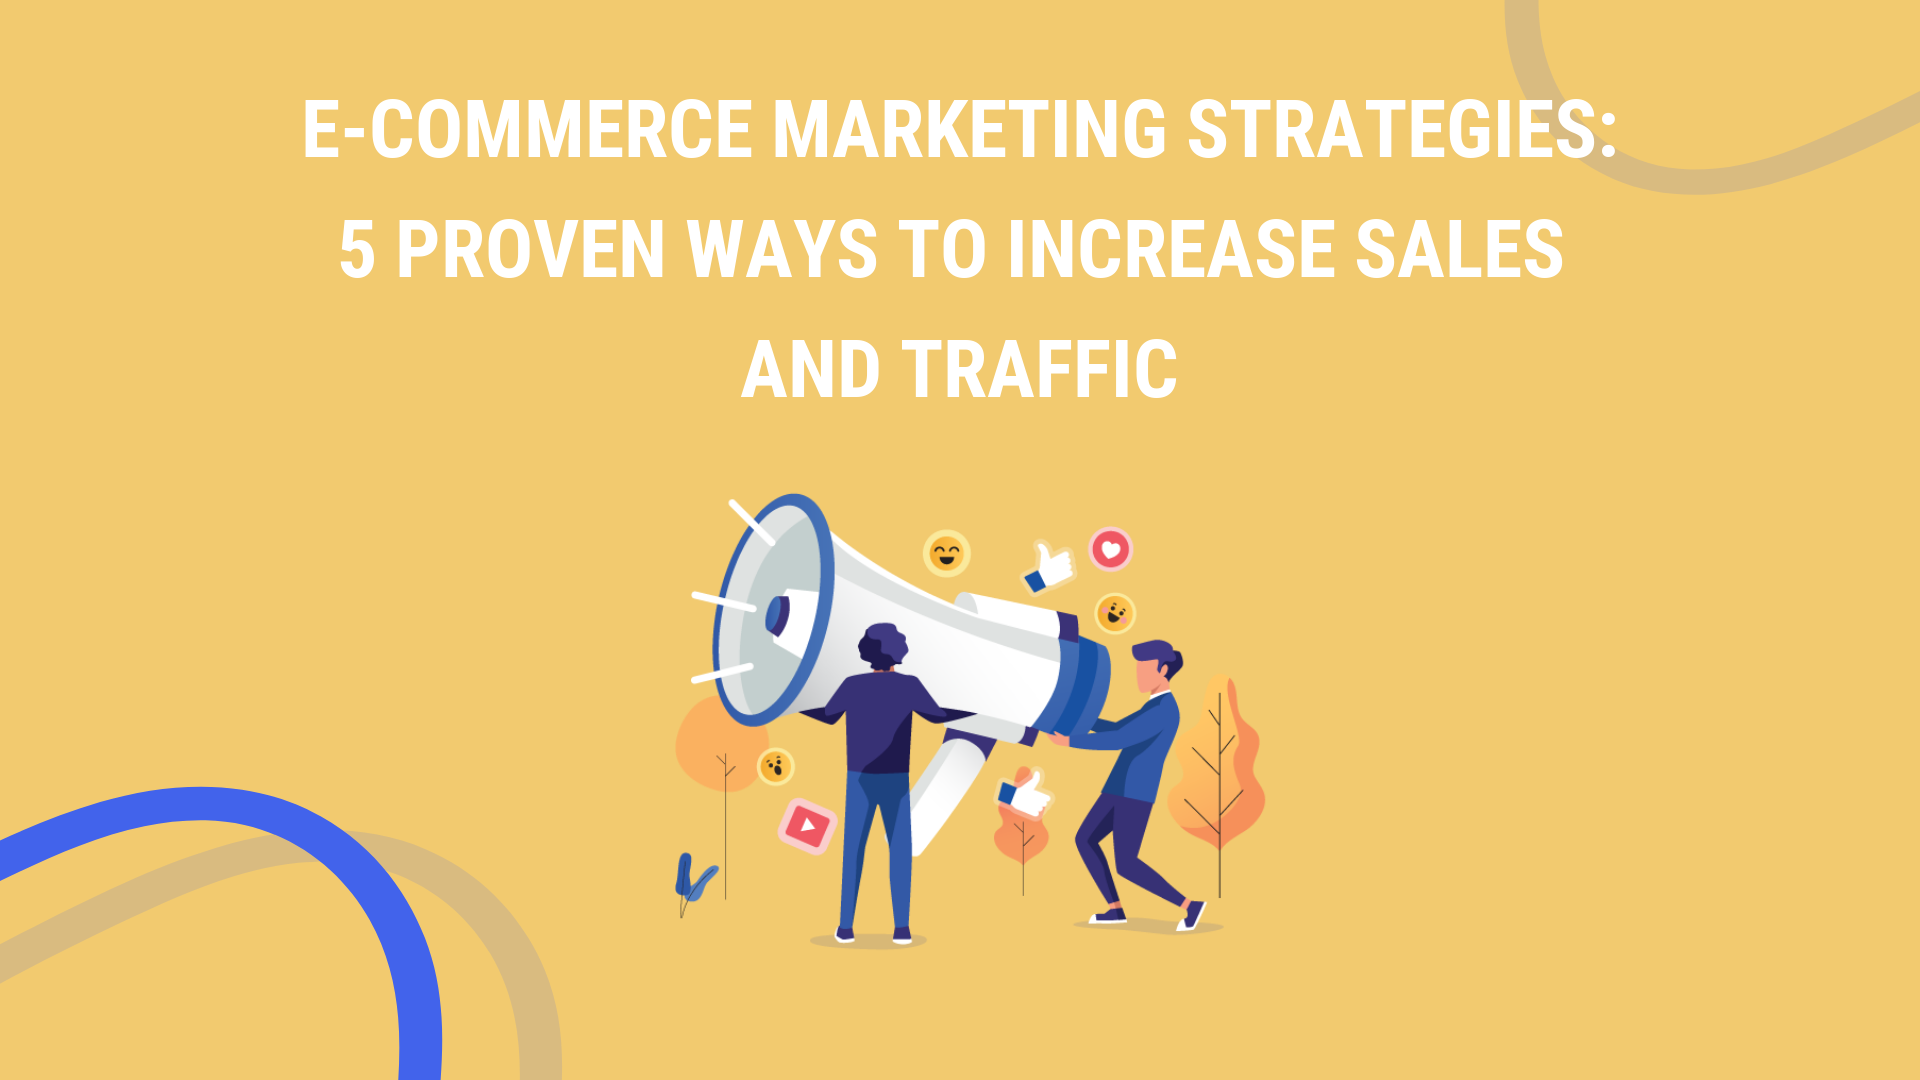 E-Commerce Marketing Strategies: 5 Proven Ways to Increase Sales and Traffic